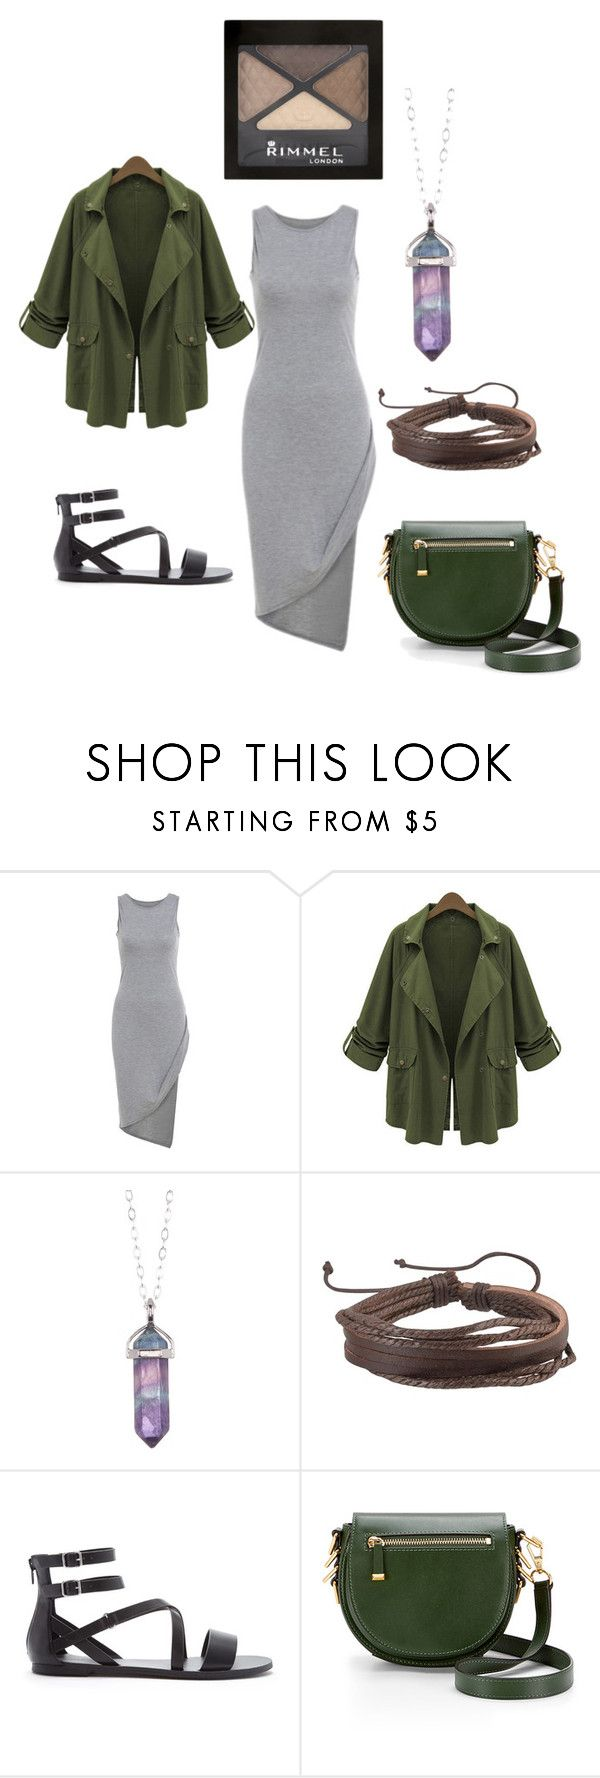 """Casual Plus Size Outfit"" by migalowa on Polyvore featuring Chicnova Fashion, Jami, Zodaca, Forever 21, Rebecca Minkoff, Rimmel, women's clothing, women's fashion, women and female"